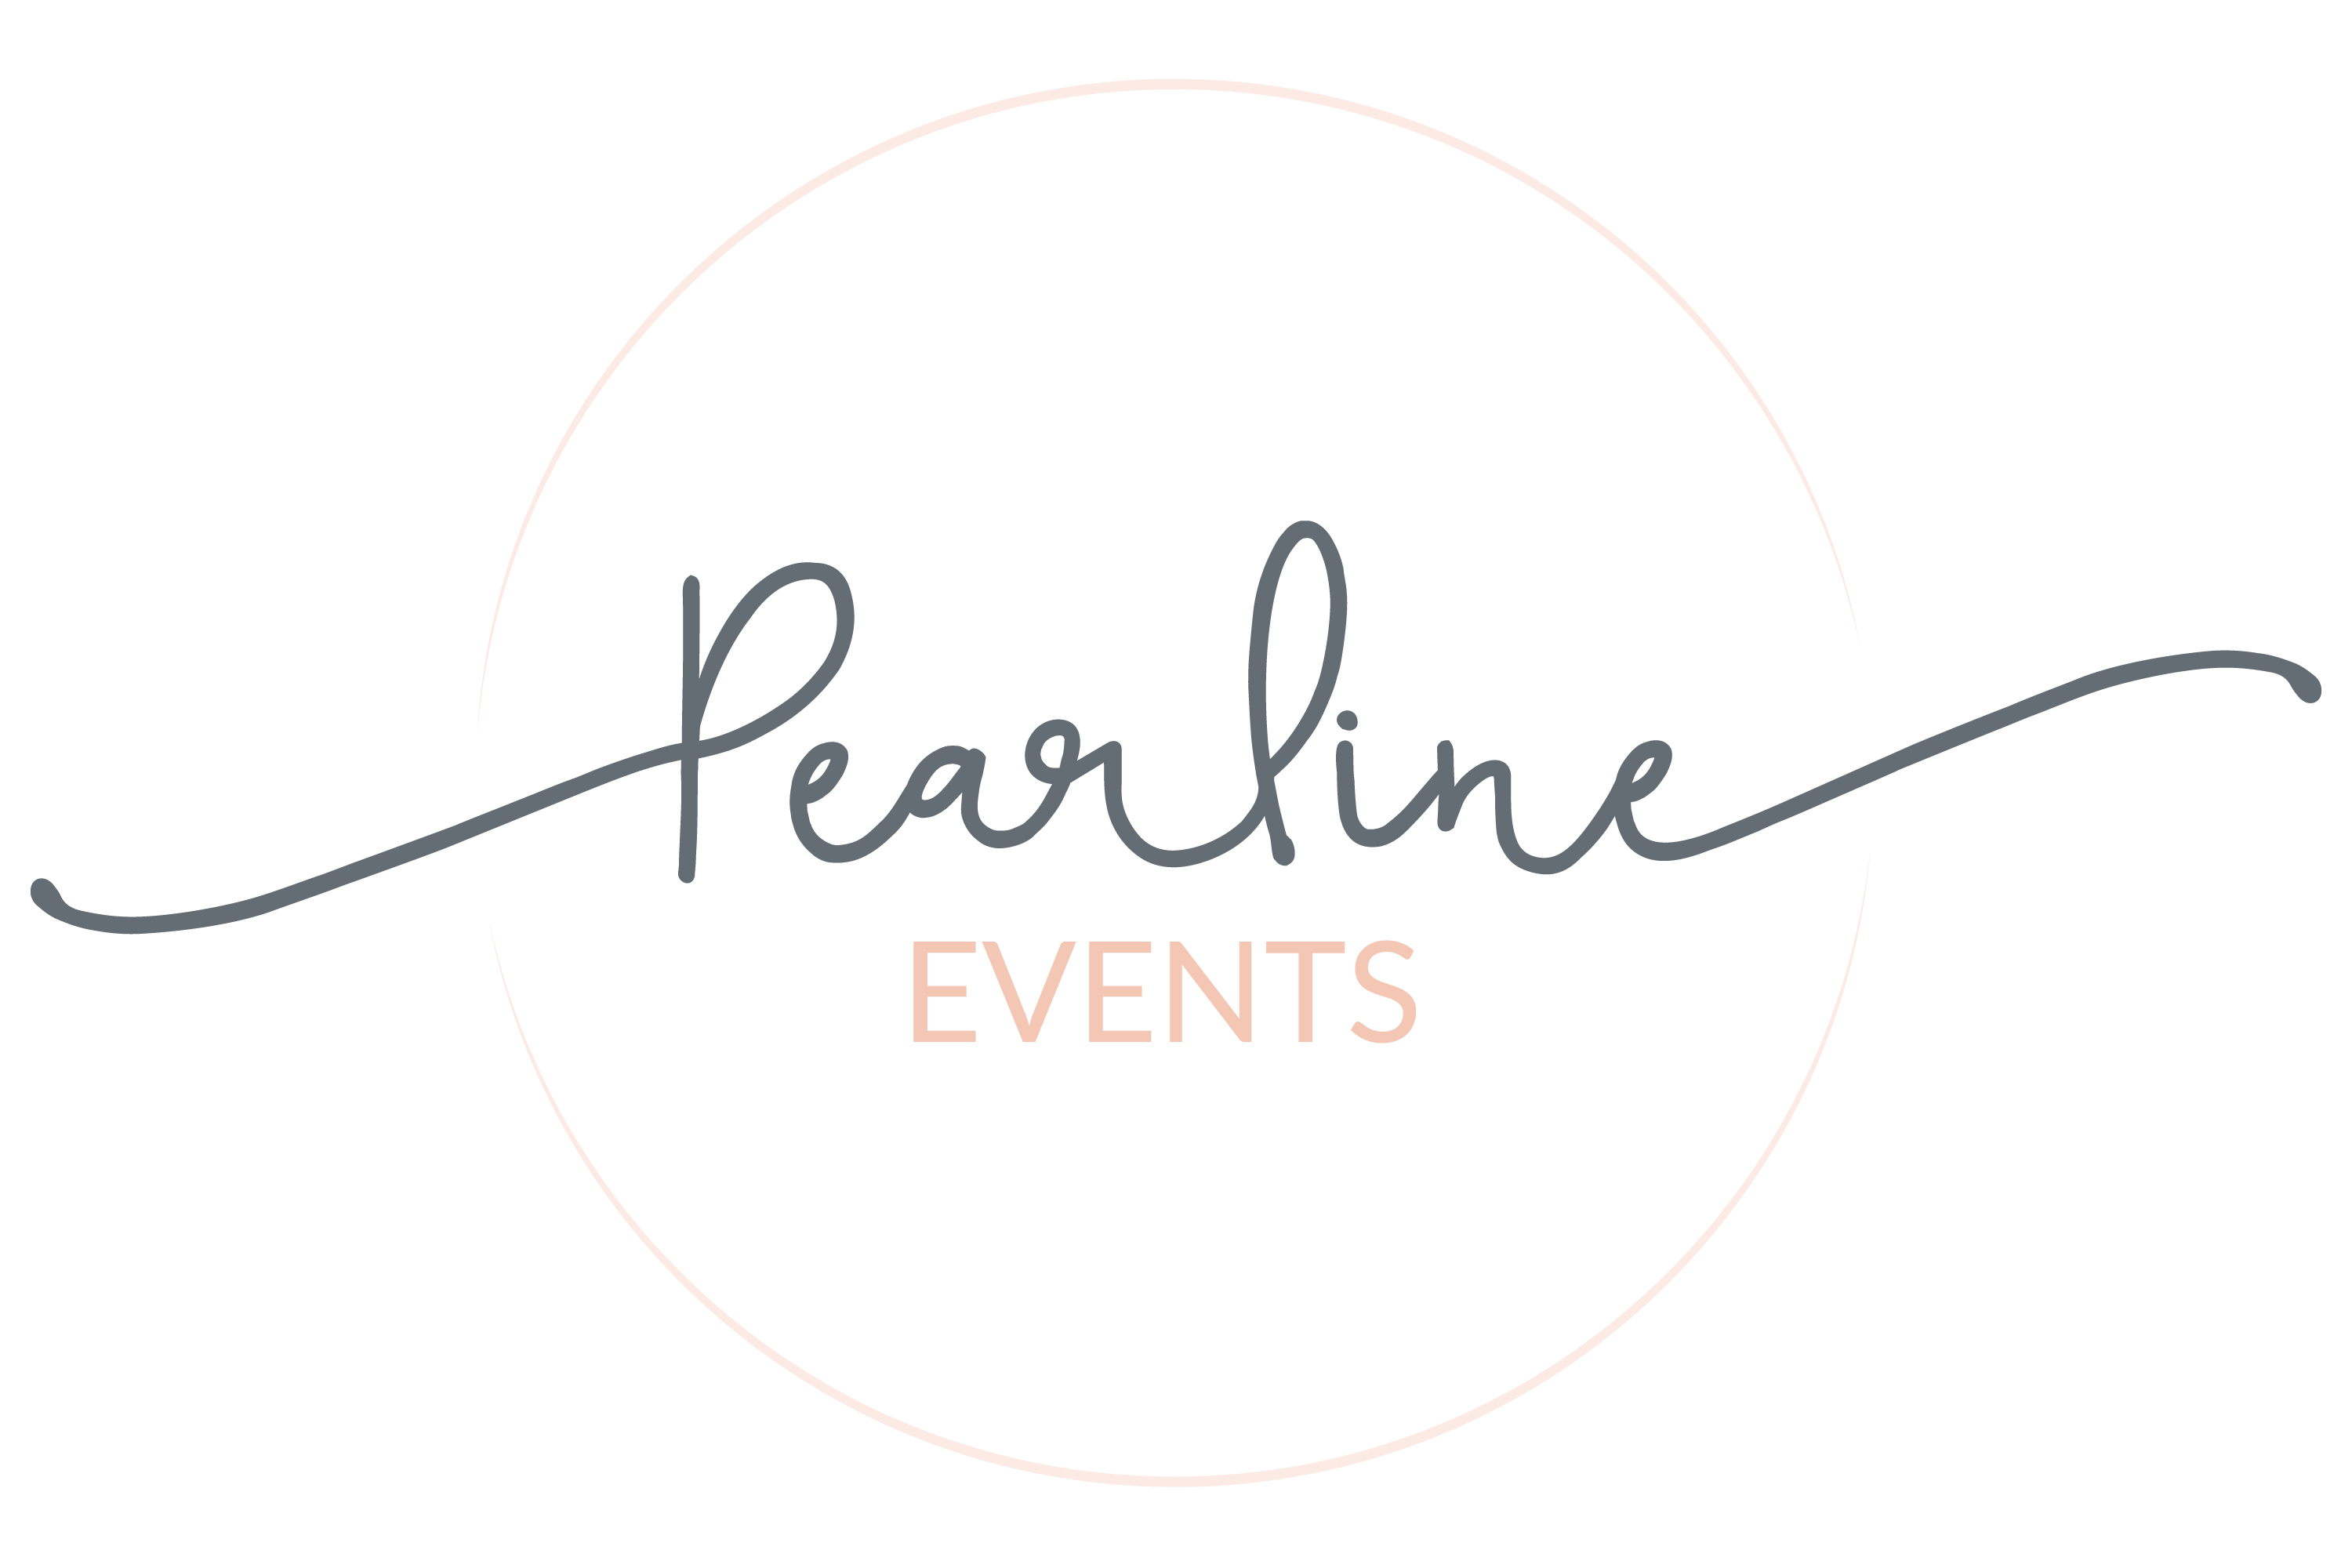 Pearline Events